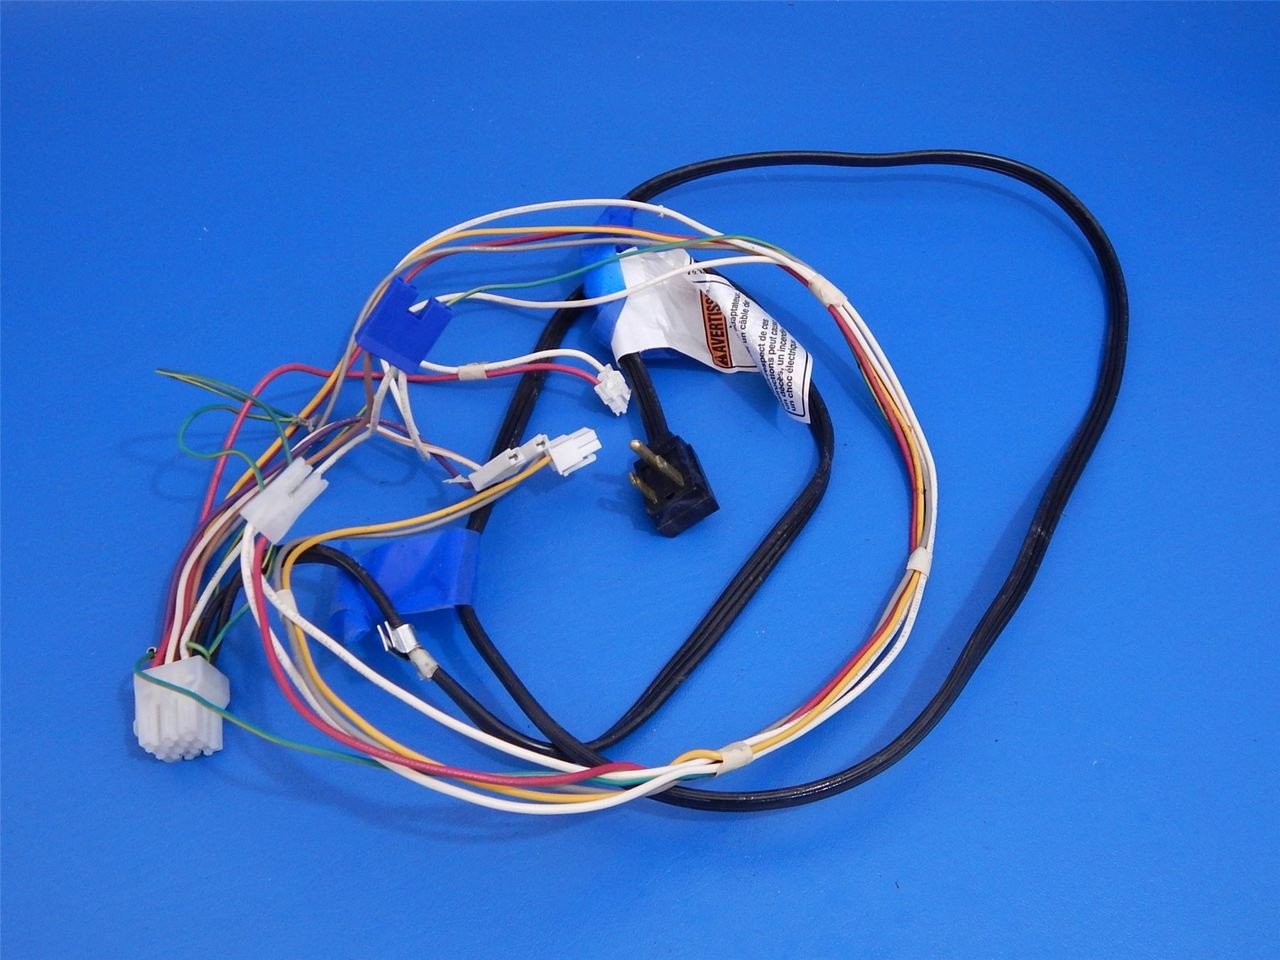 small resolution of whirlpool side side refrigerator wrs325fdam02 wall plug wire harness w10417928 ice cold beer appliance parts